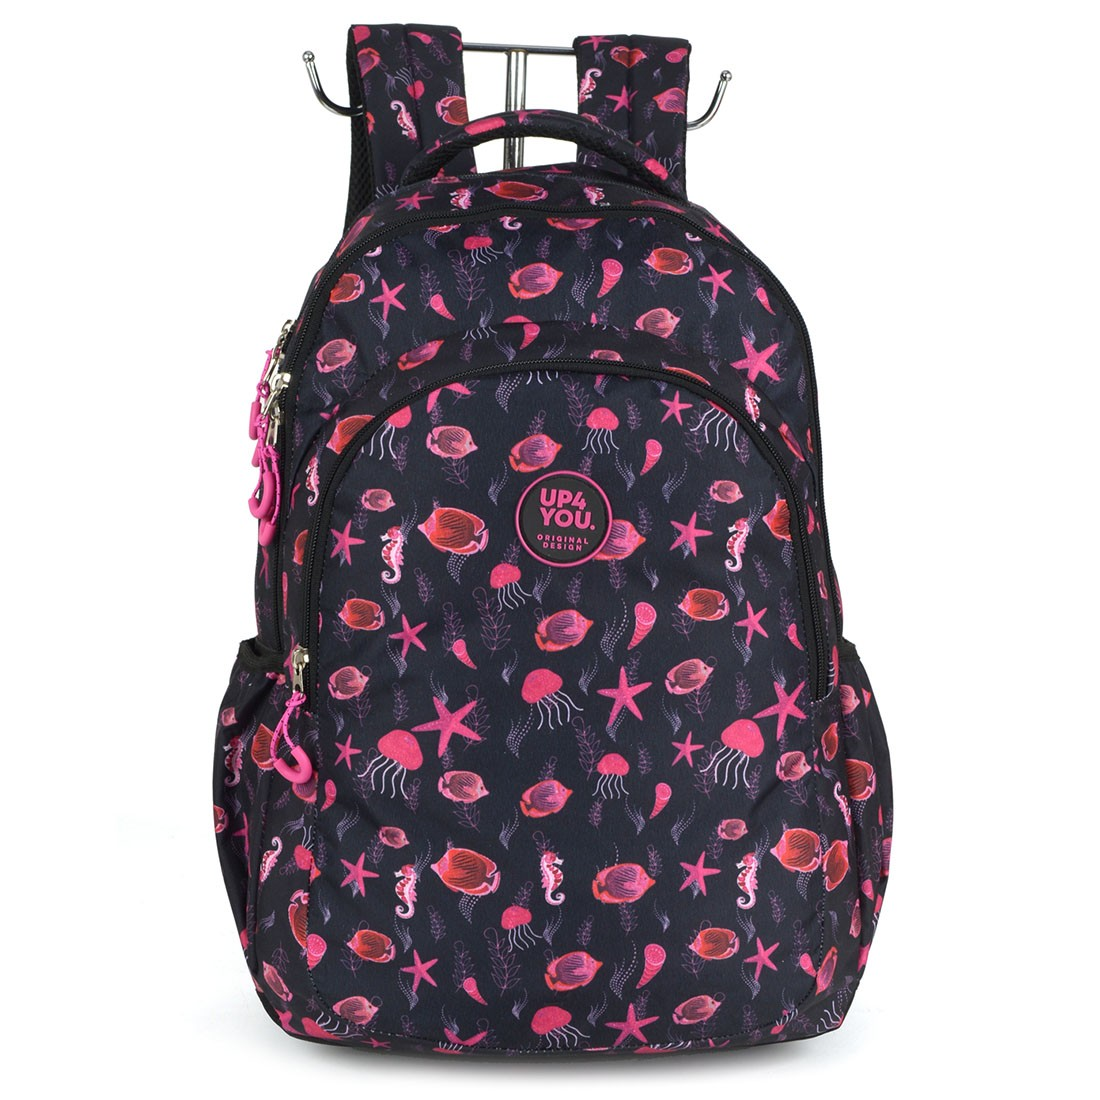 Mochila Escolar para Notebook Up4You MJ48859UP-PT